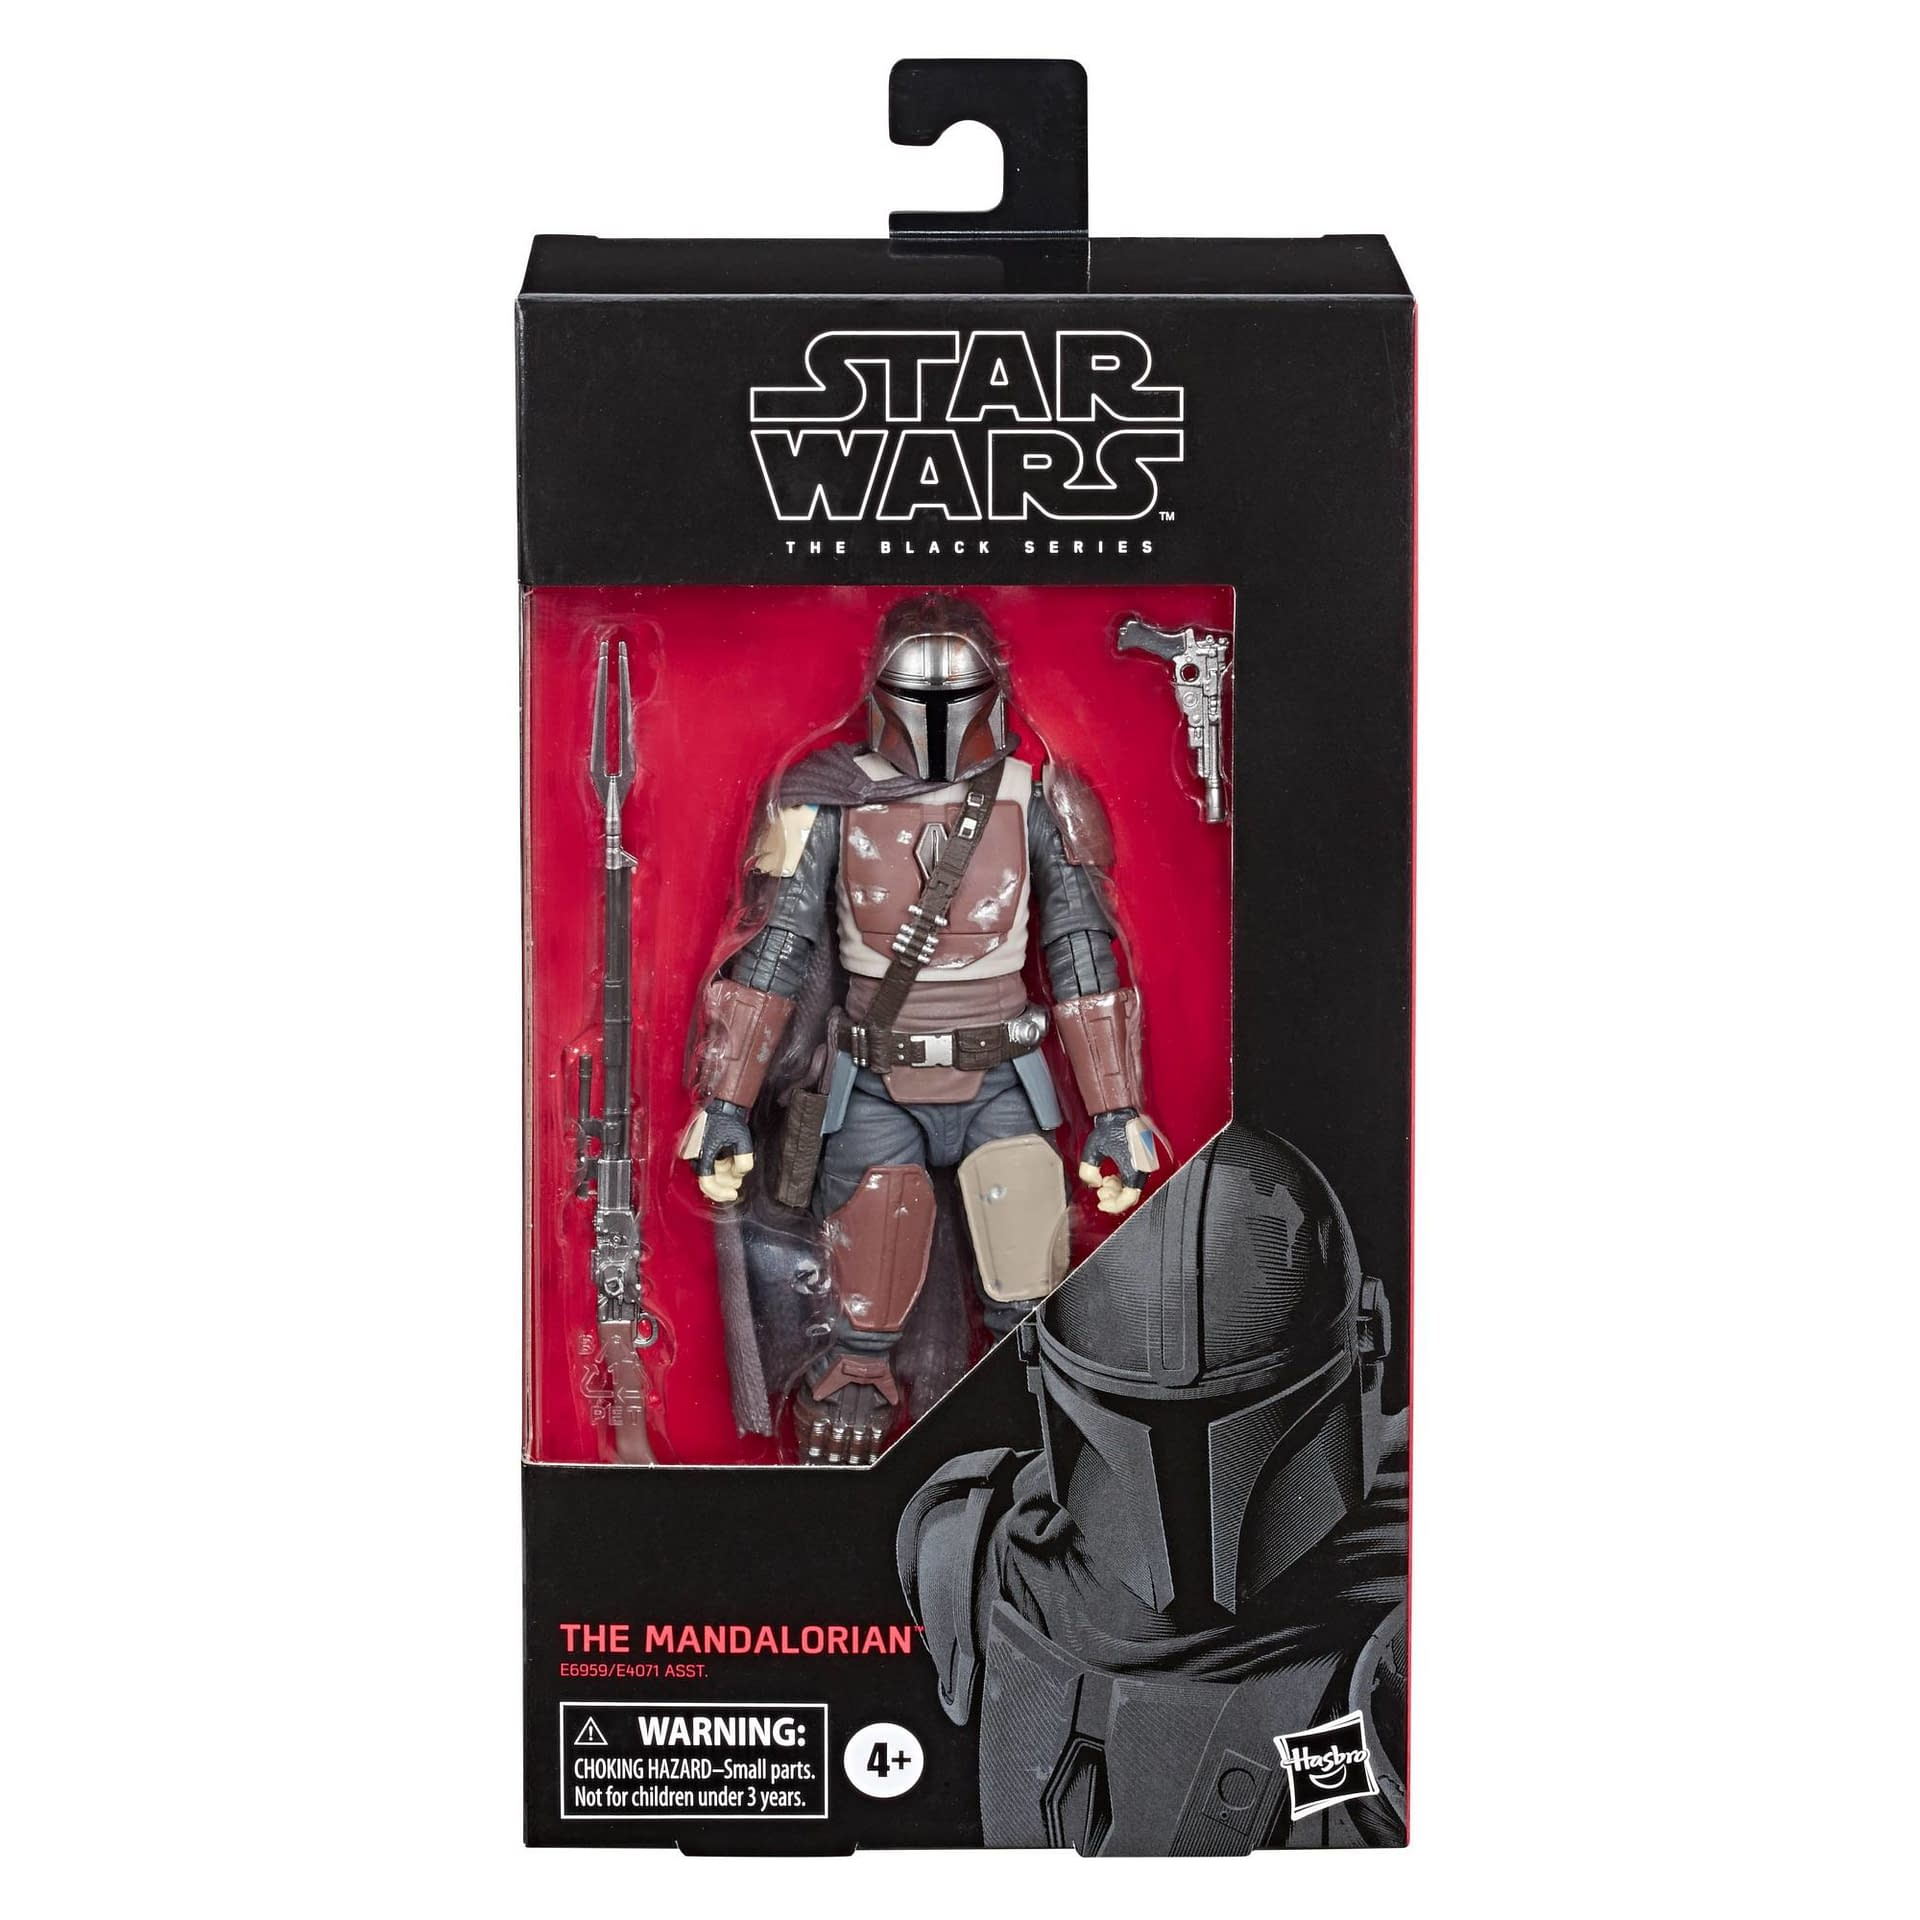 Mandalorian Star Wars The Black Series Figures Coming Next Week